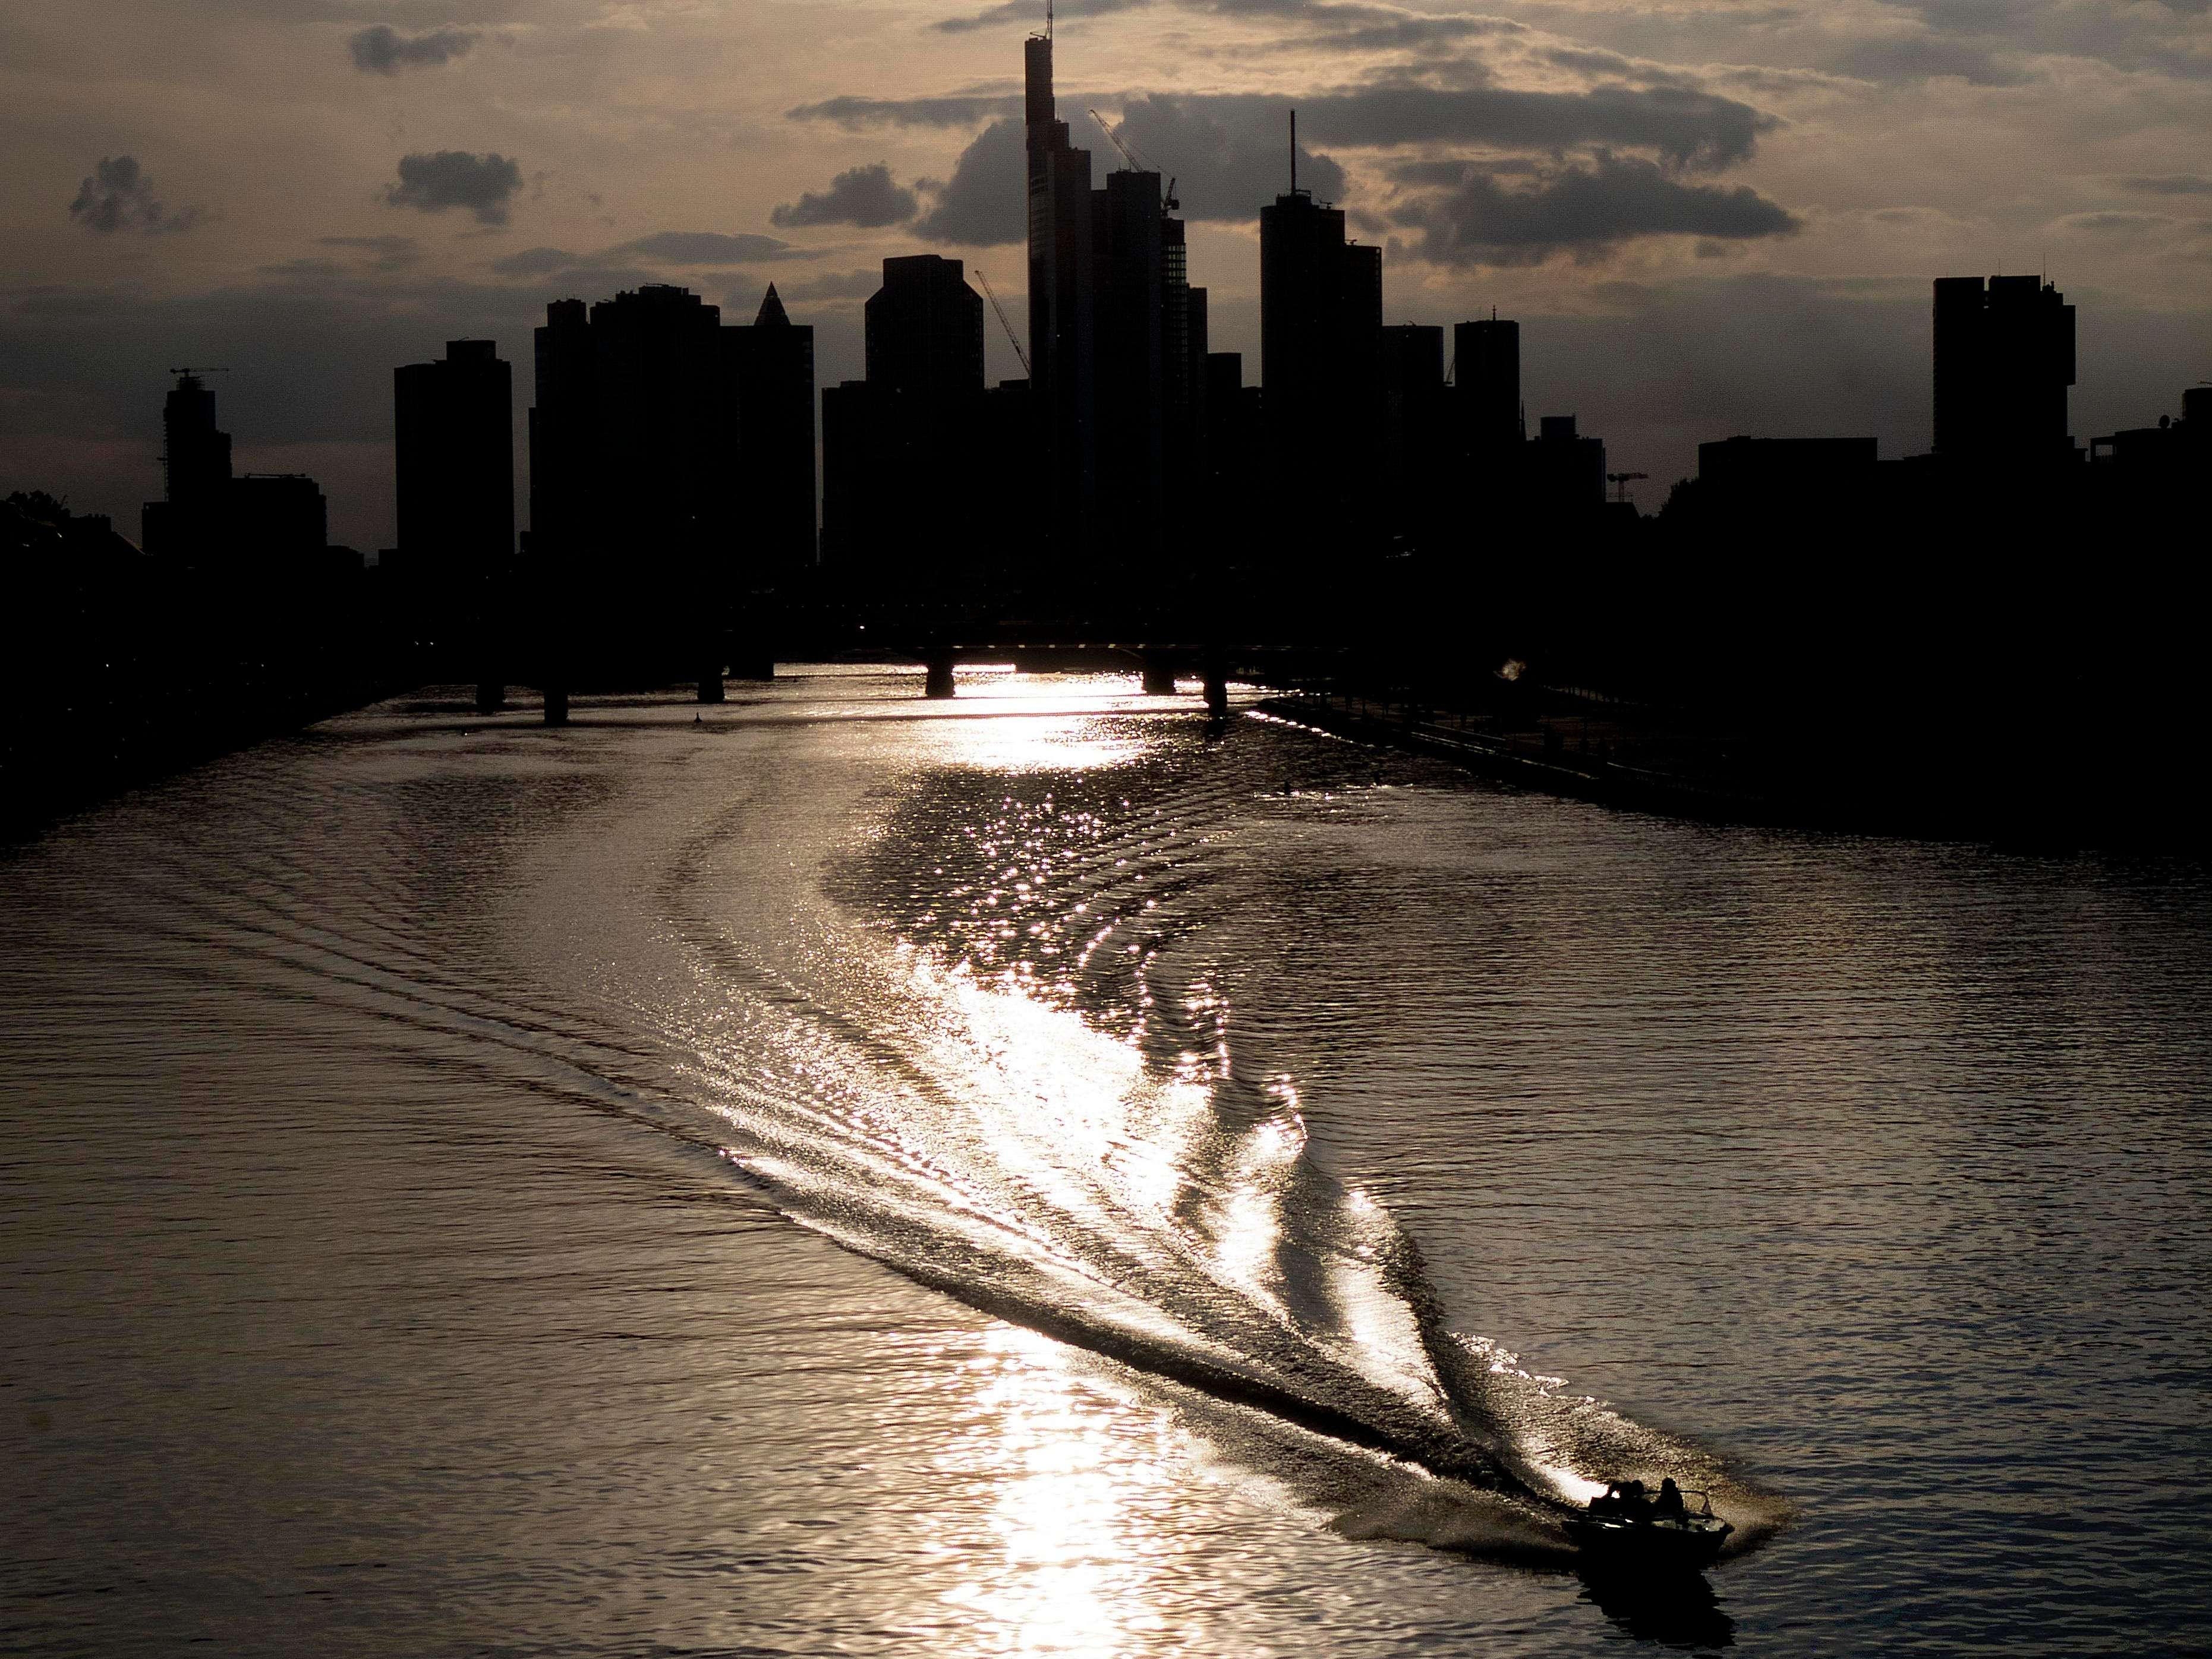 A motor boat cruises over the river Main during sunset in Frankfurt, Germany, Tuesday, May 7, 2019.